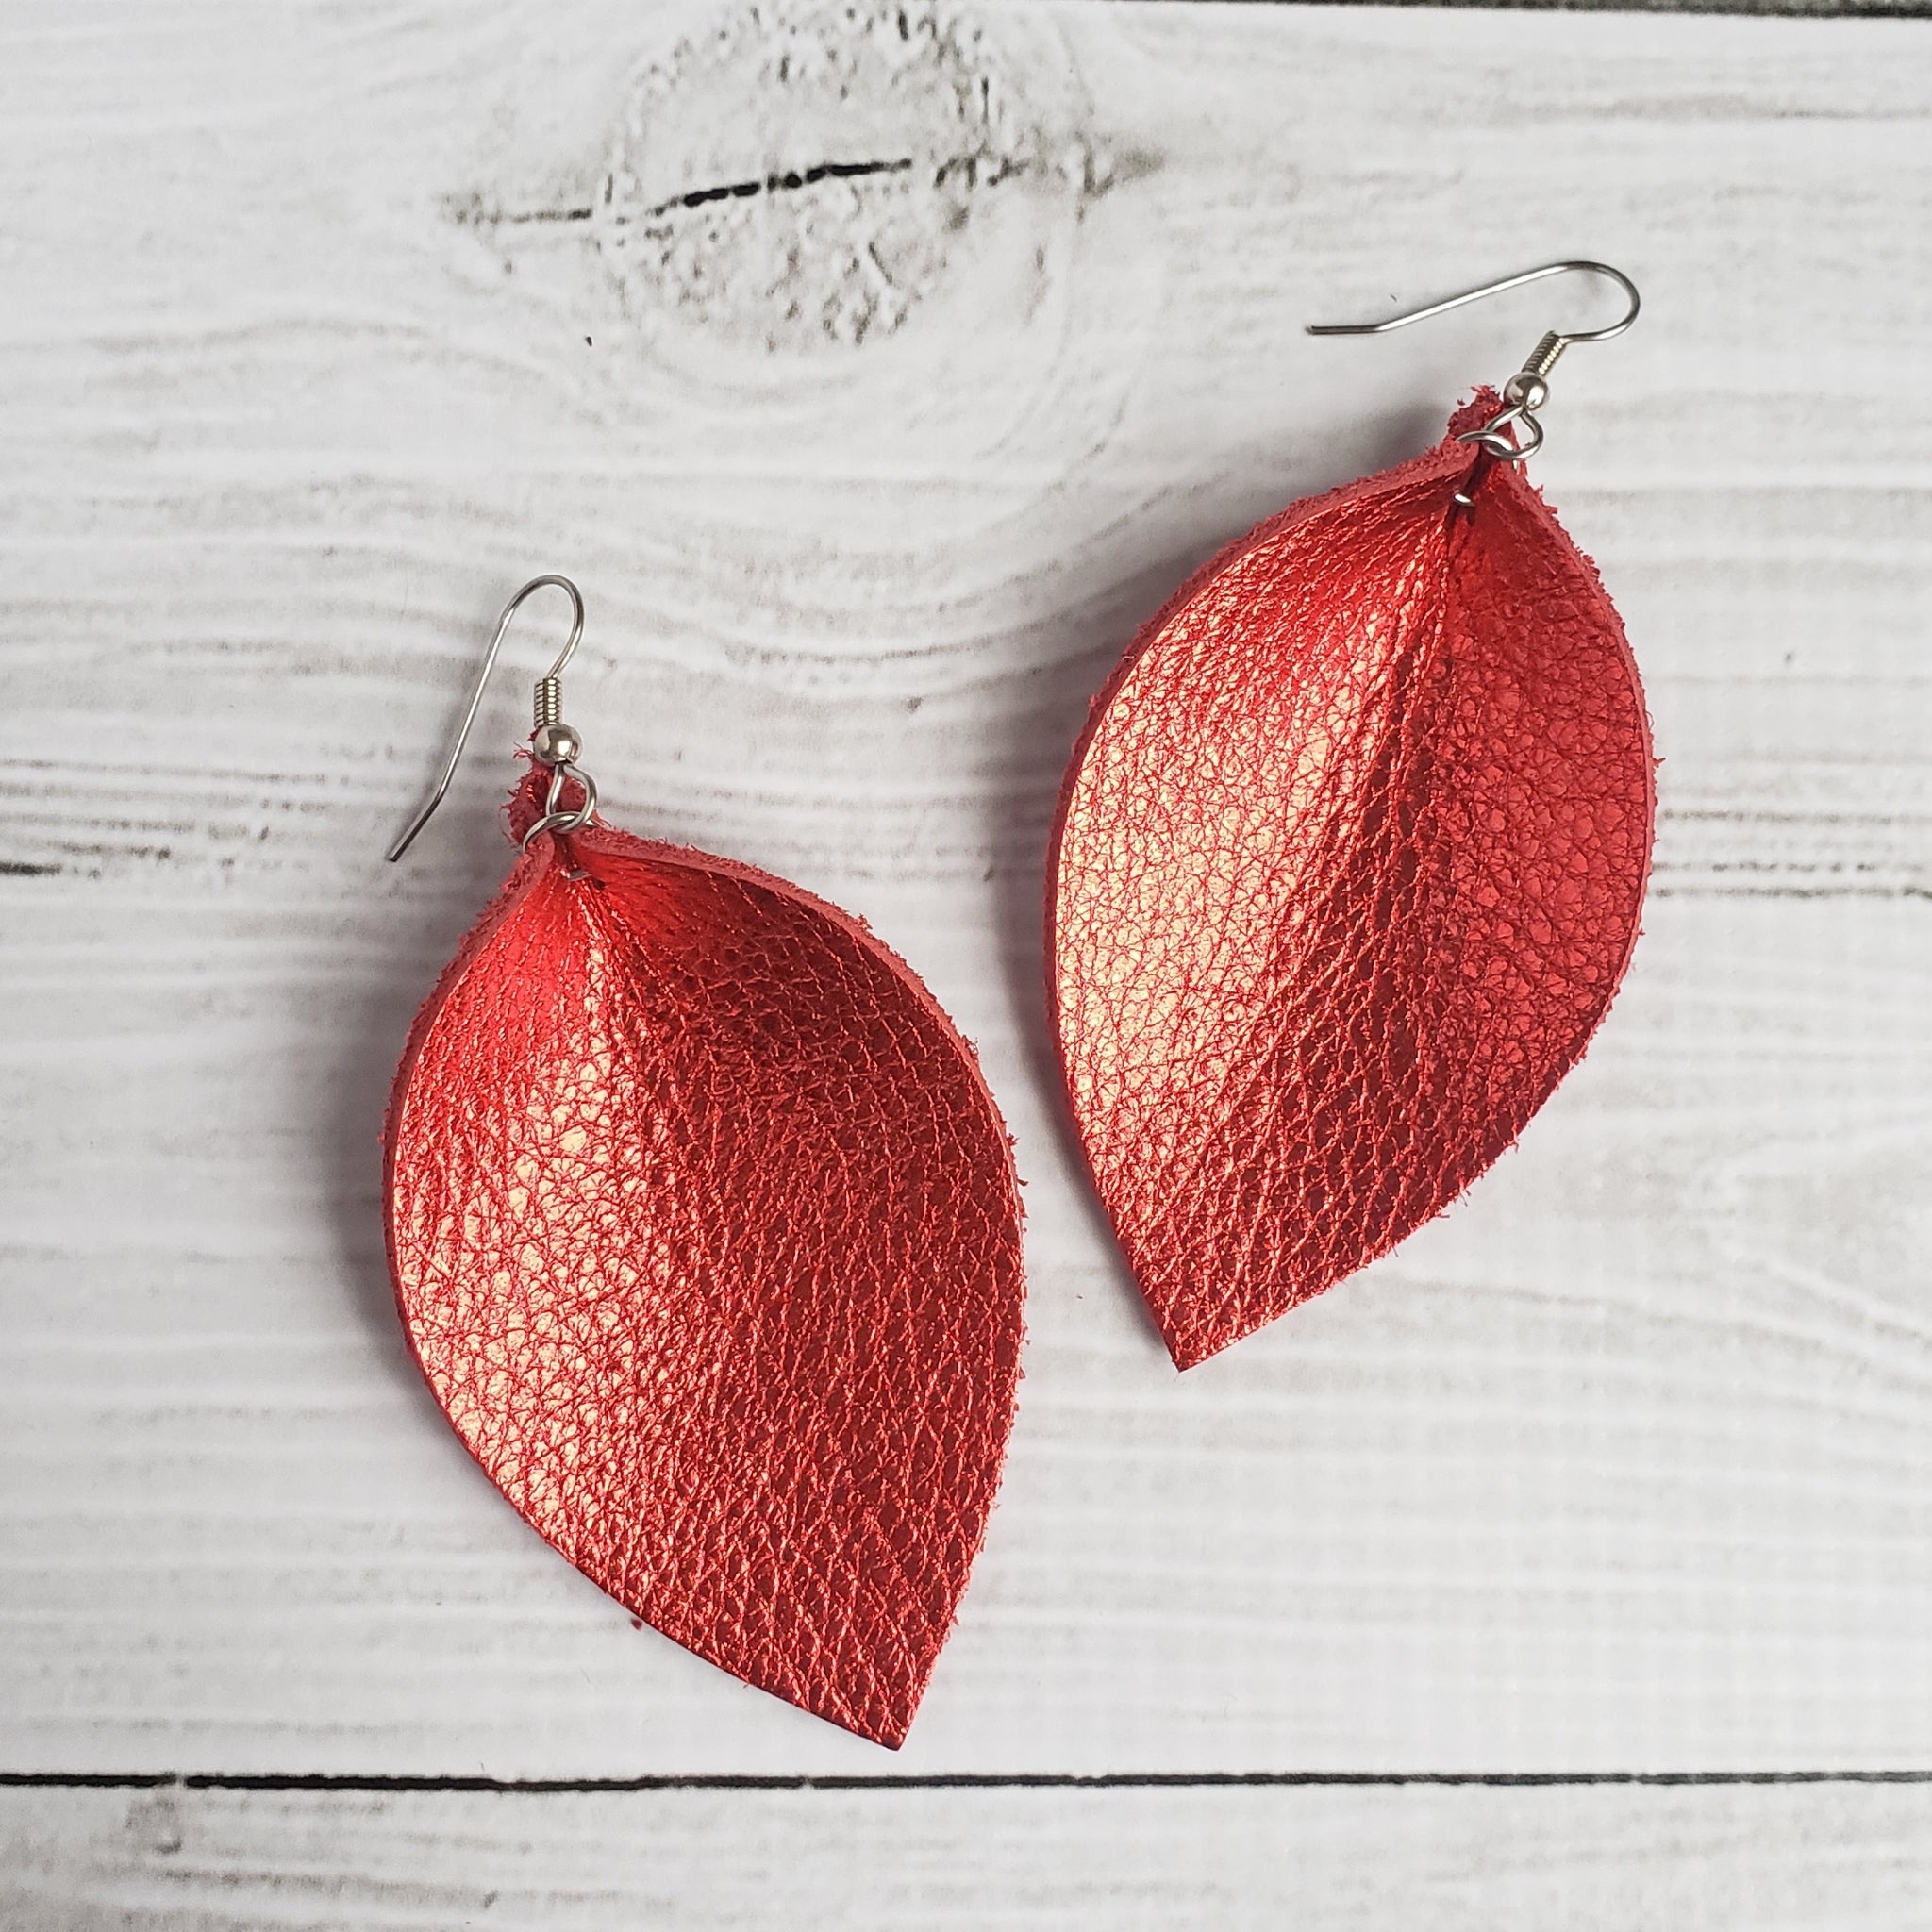 Metallic Red Leather Leaf Earrings